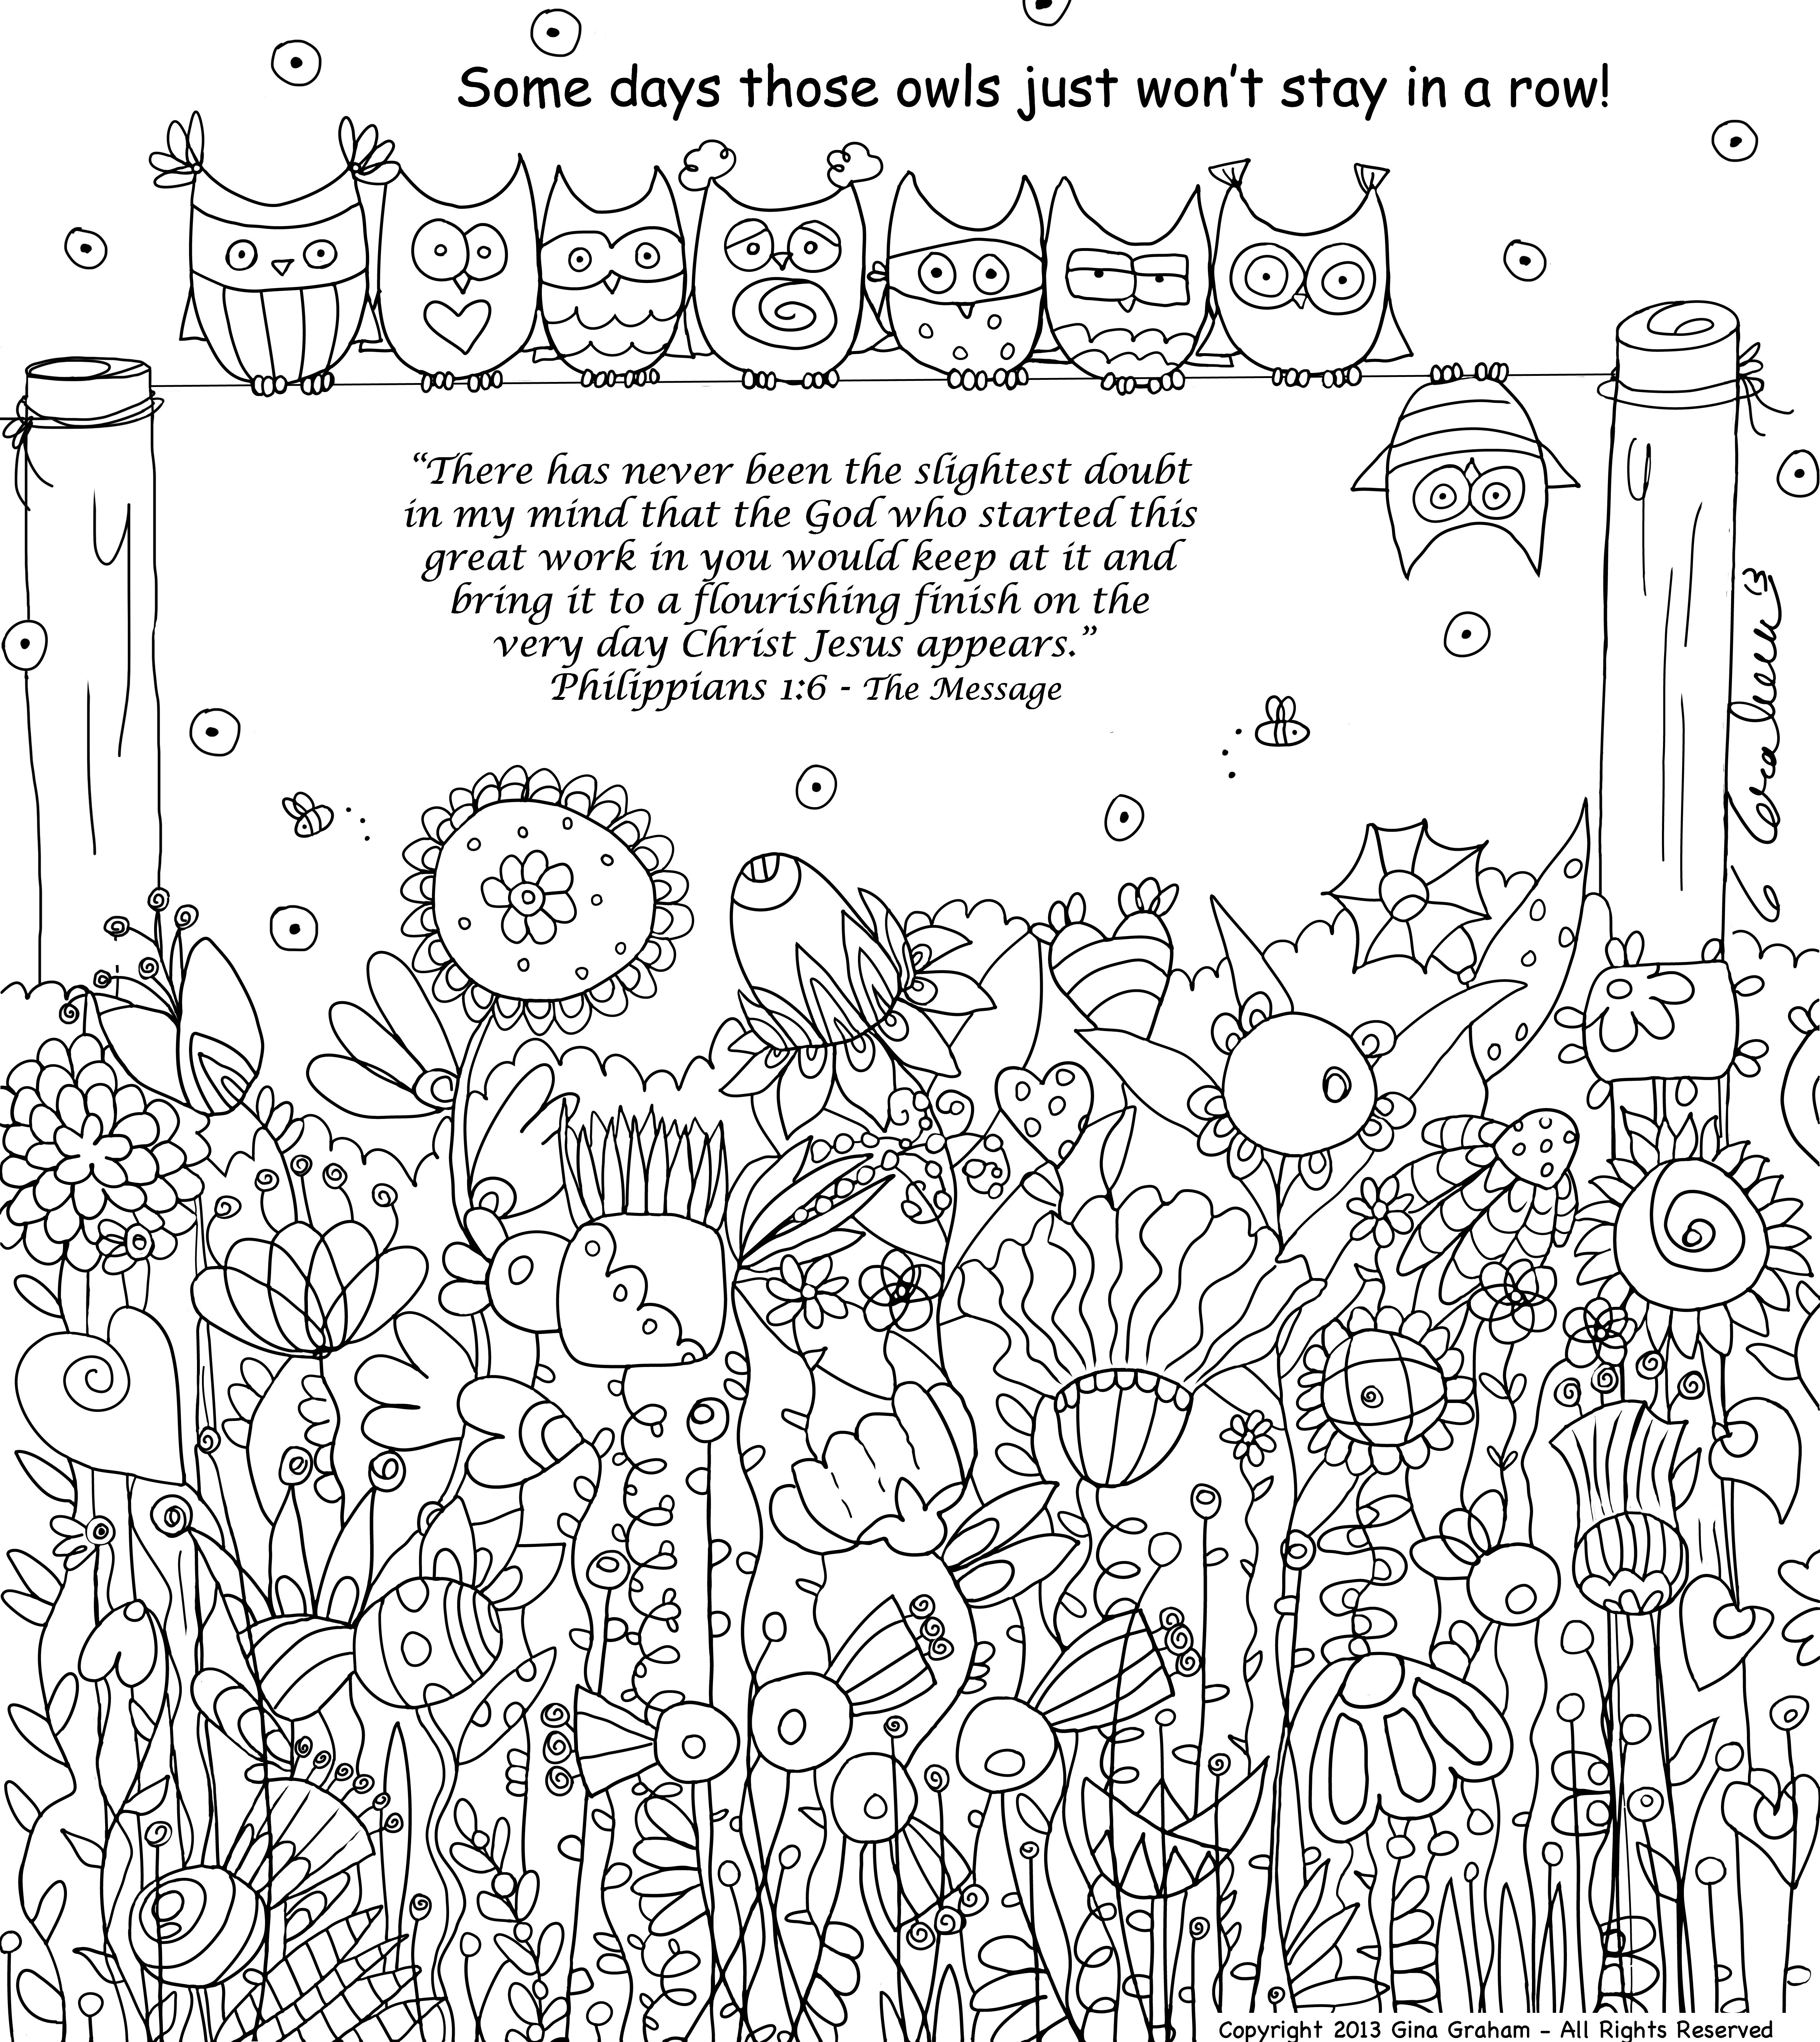 philippians 1 6 coloring sheet totally tots in my heart philippians 16 1 philippians 6 coloring sheet